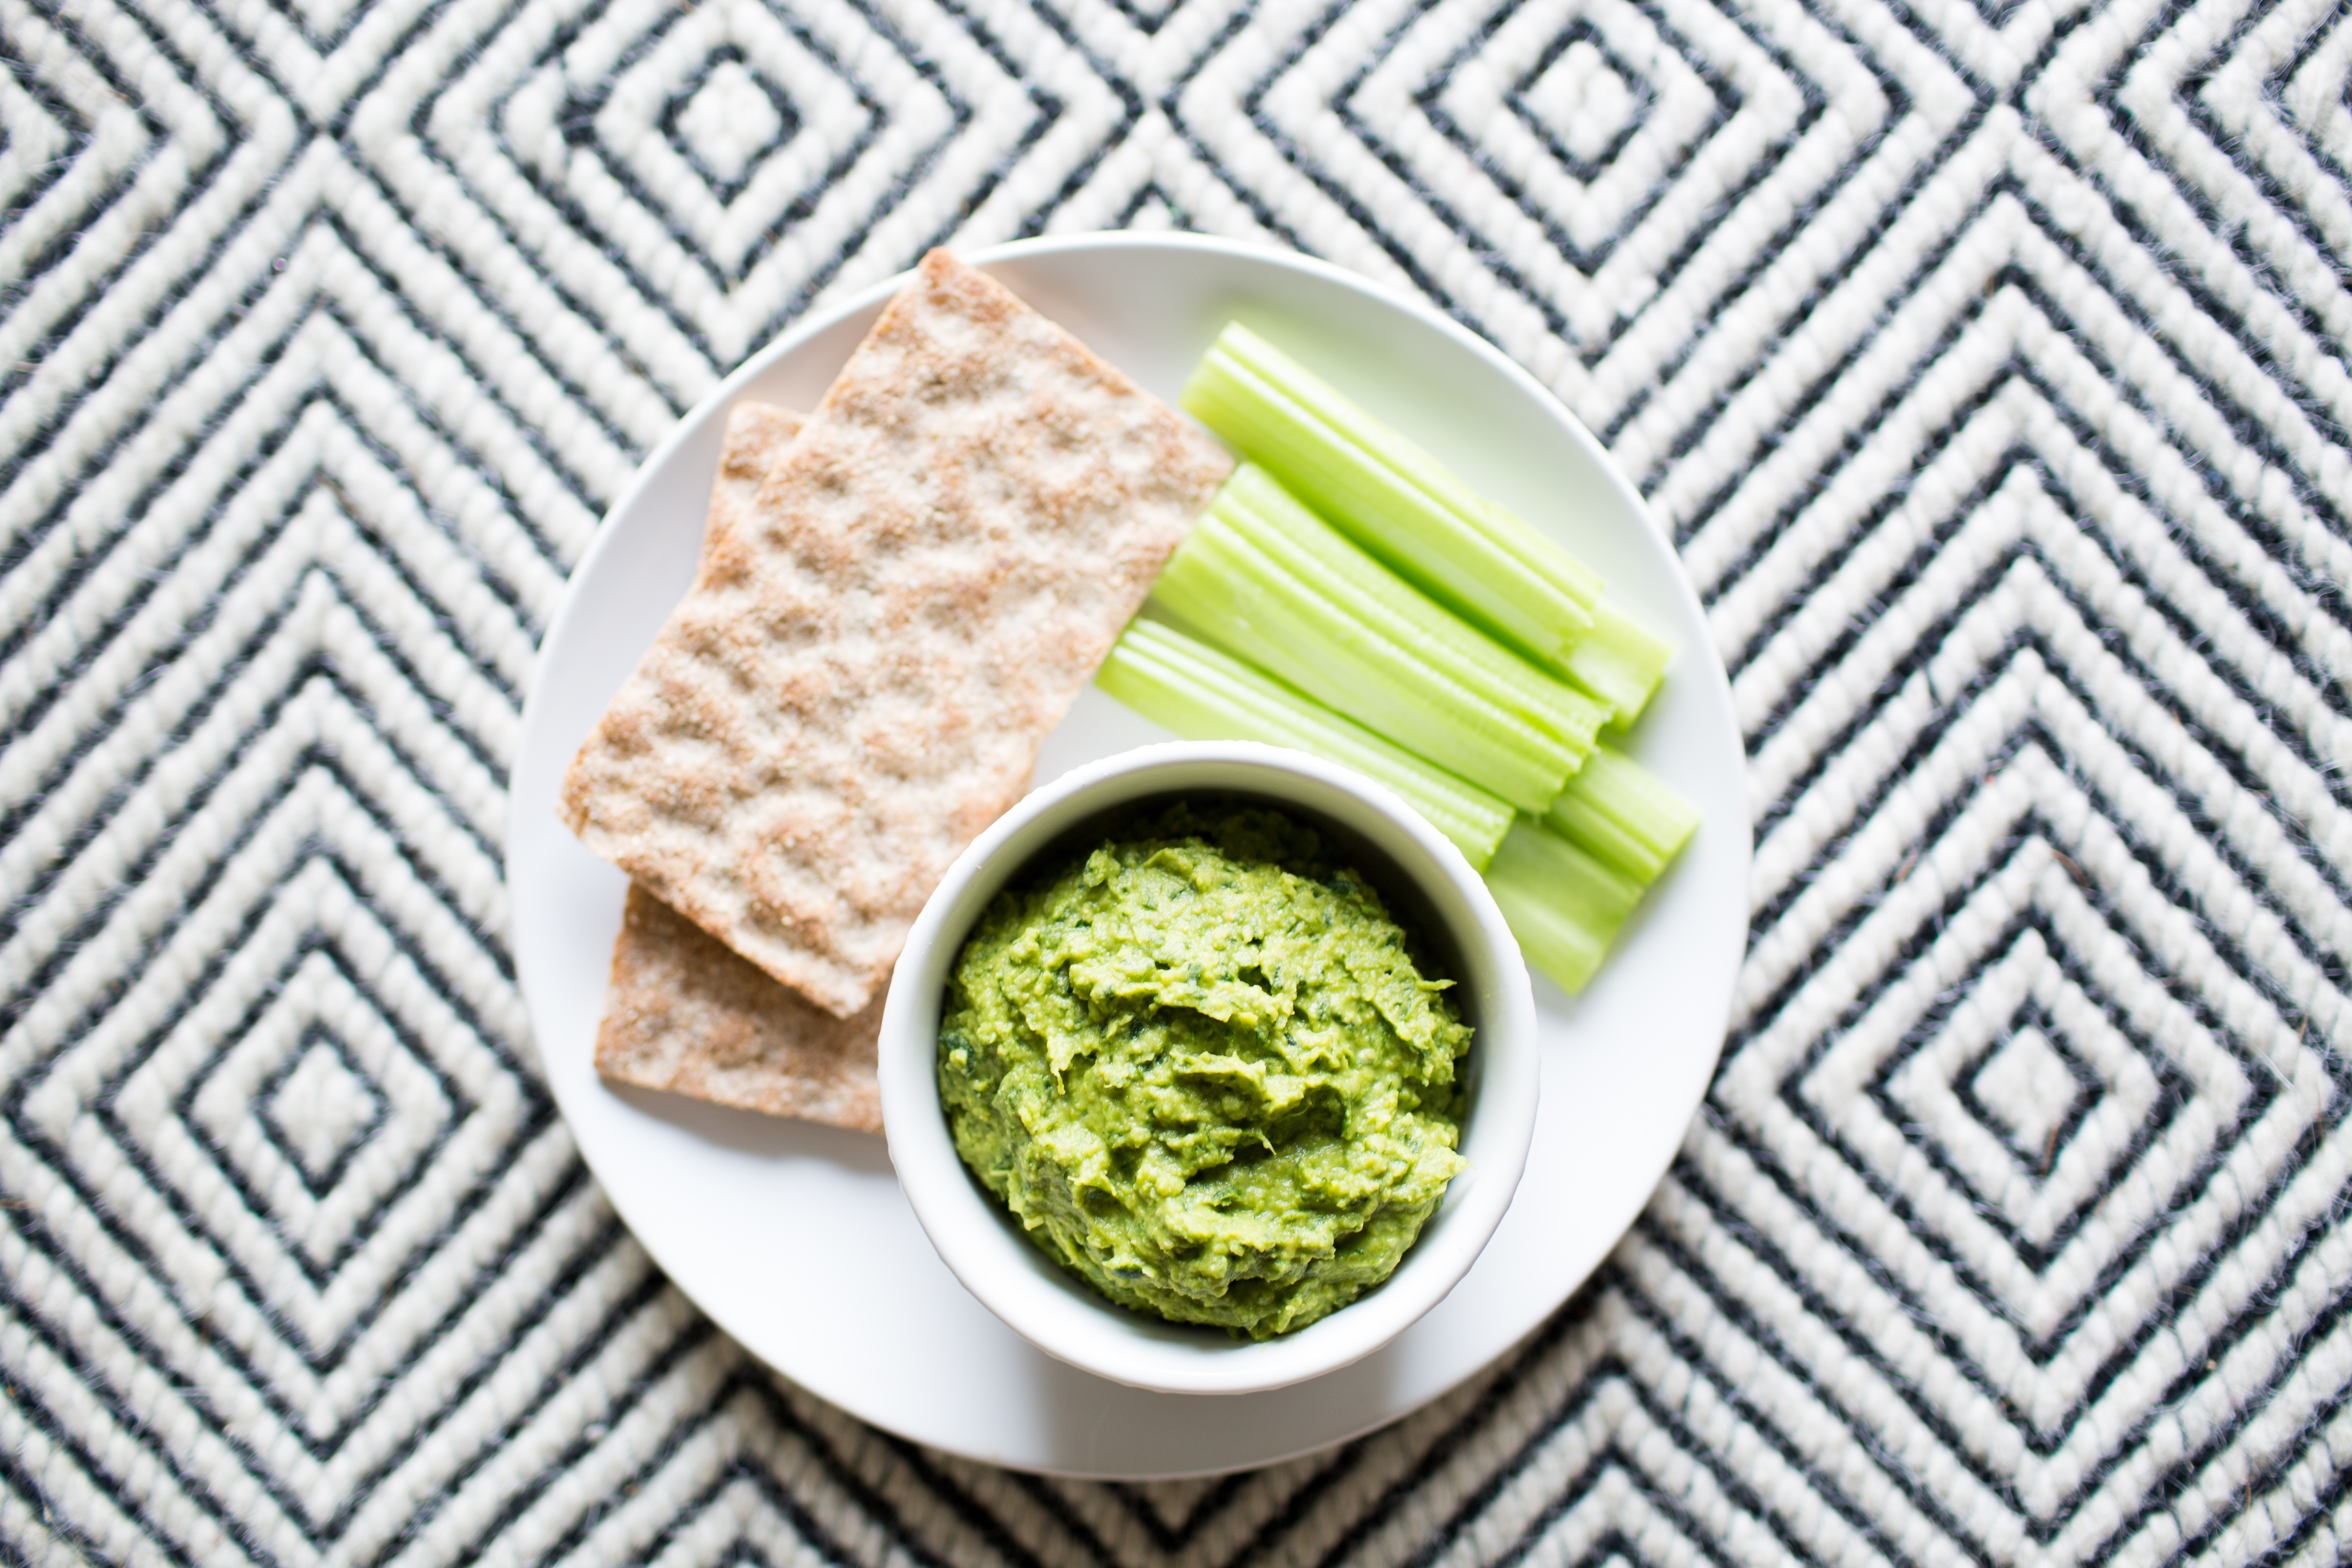 Green Herb Hummus with Celery Sticks and Crackers